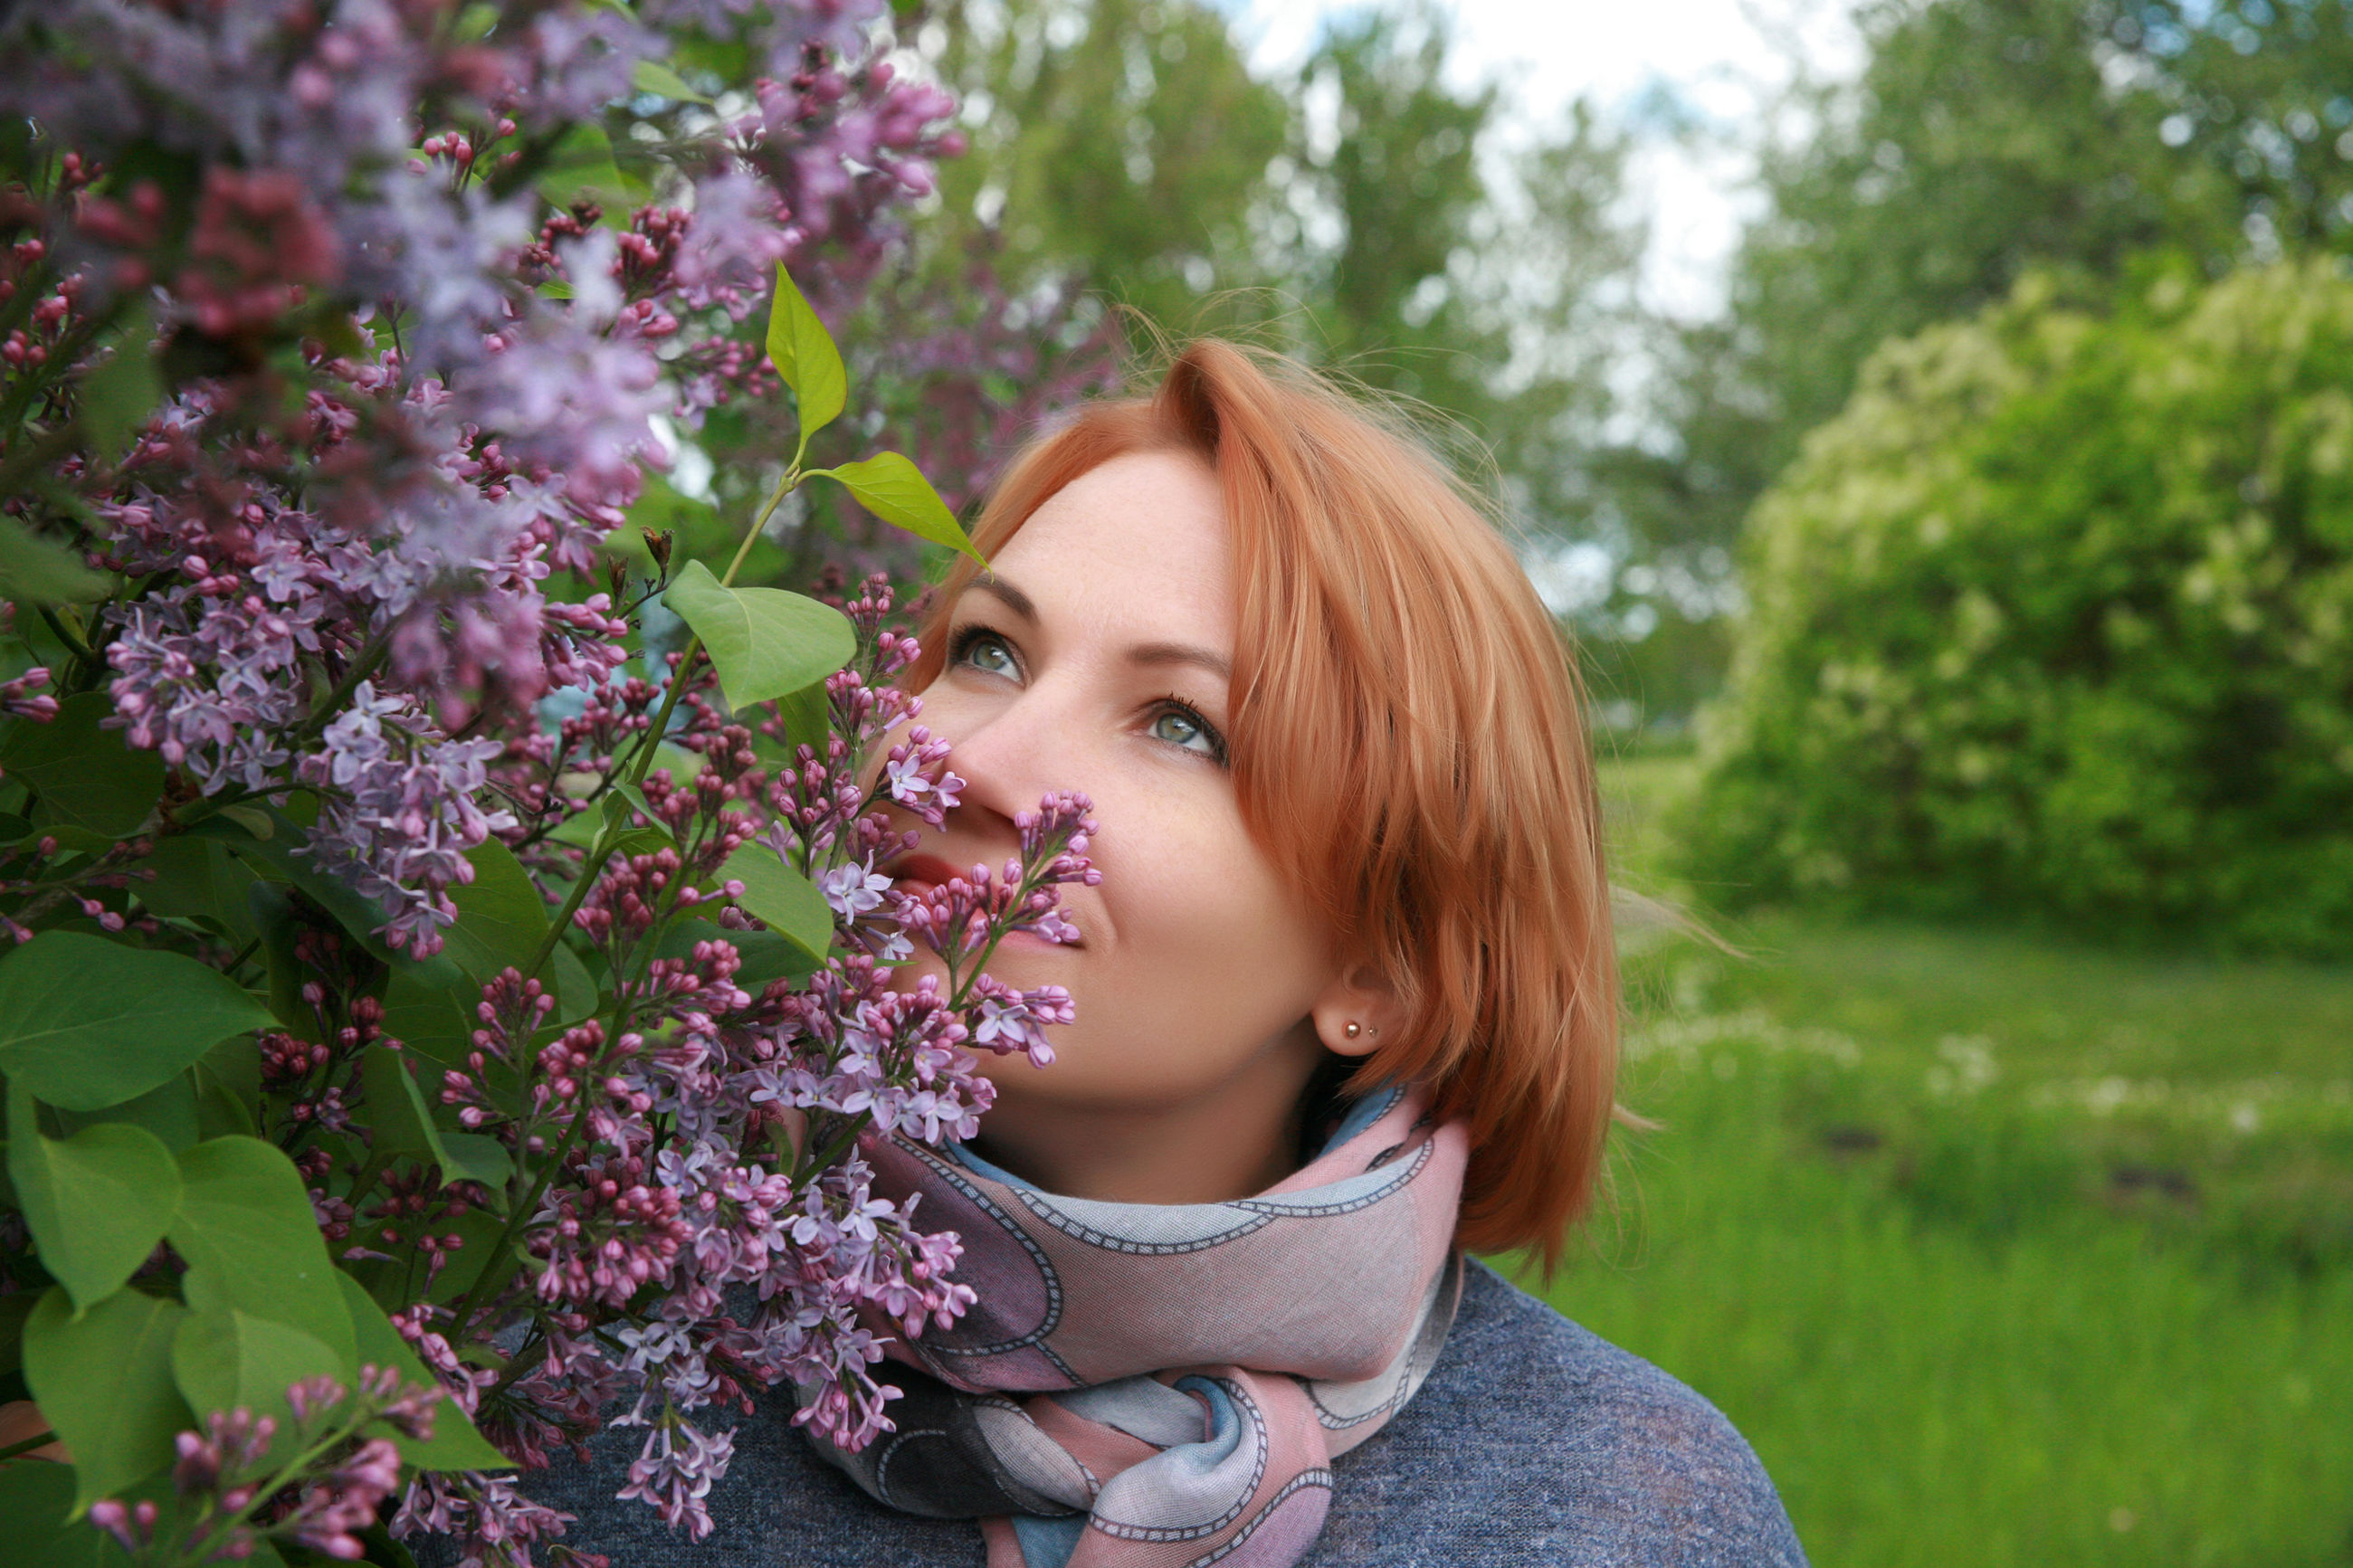 flower, tree, young adult, young women, nature, growth, plant, beautiful woman, one person, outdoors, real people, leisure activity, day, lifestyles, beauty, beauty in nature, smiling, women, portrait, close-up, freshness, fragility, people